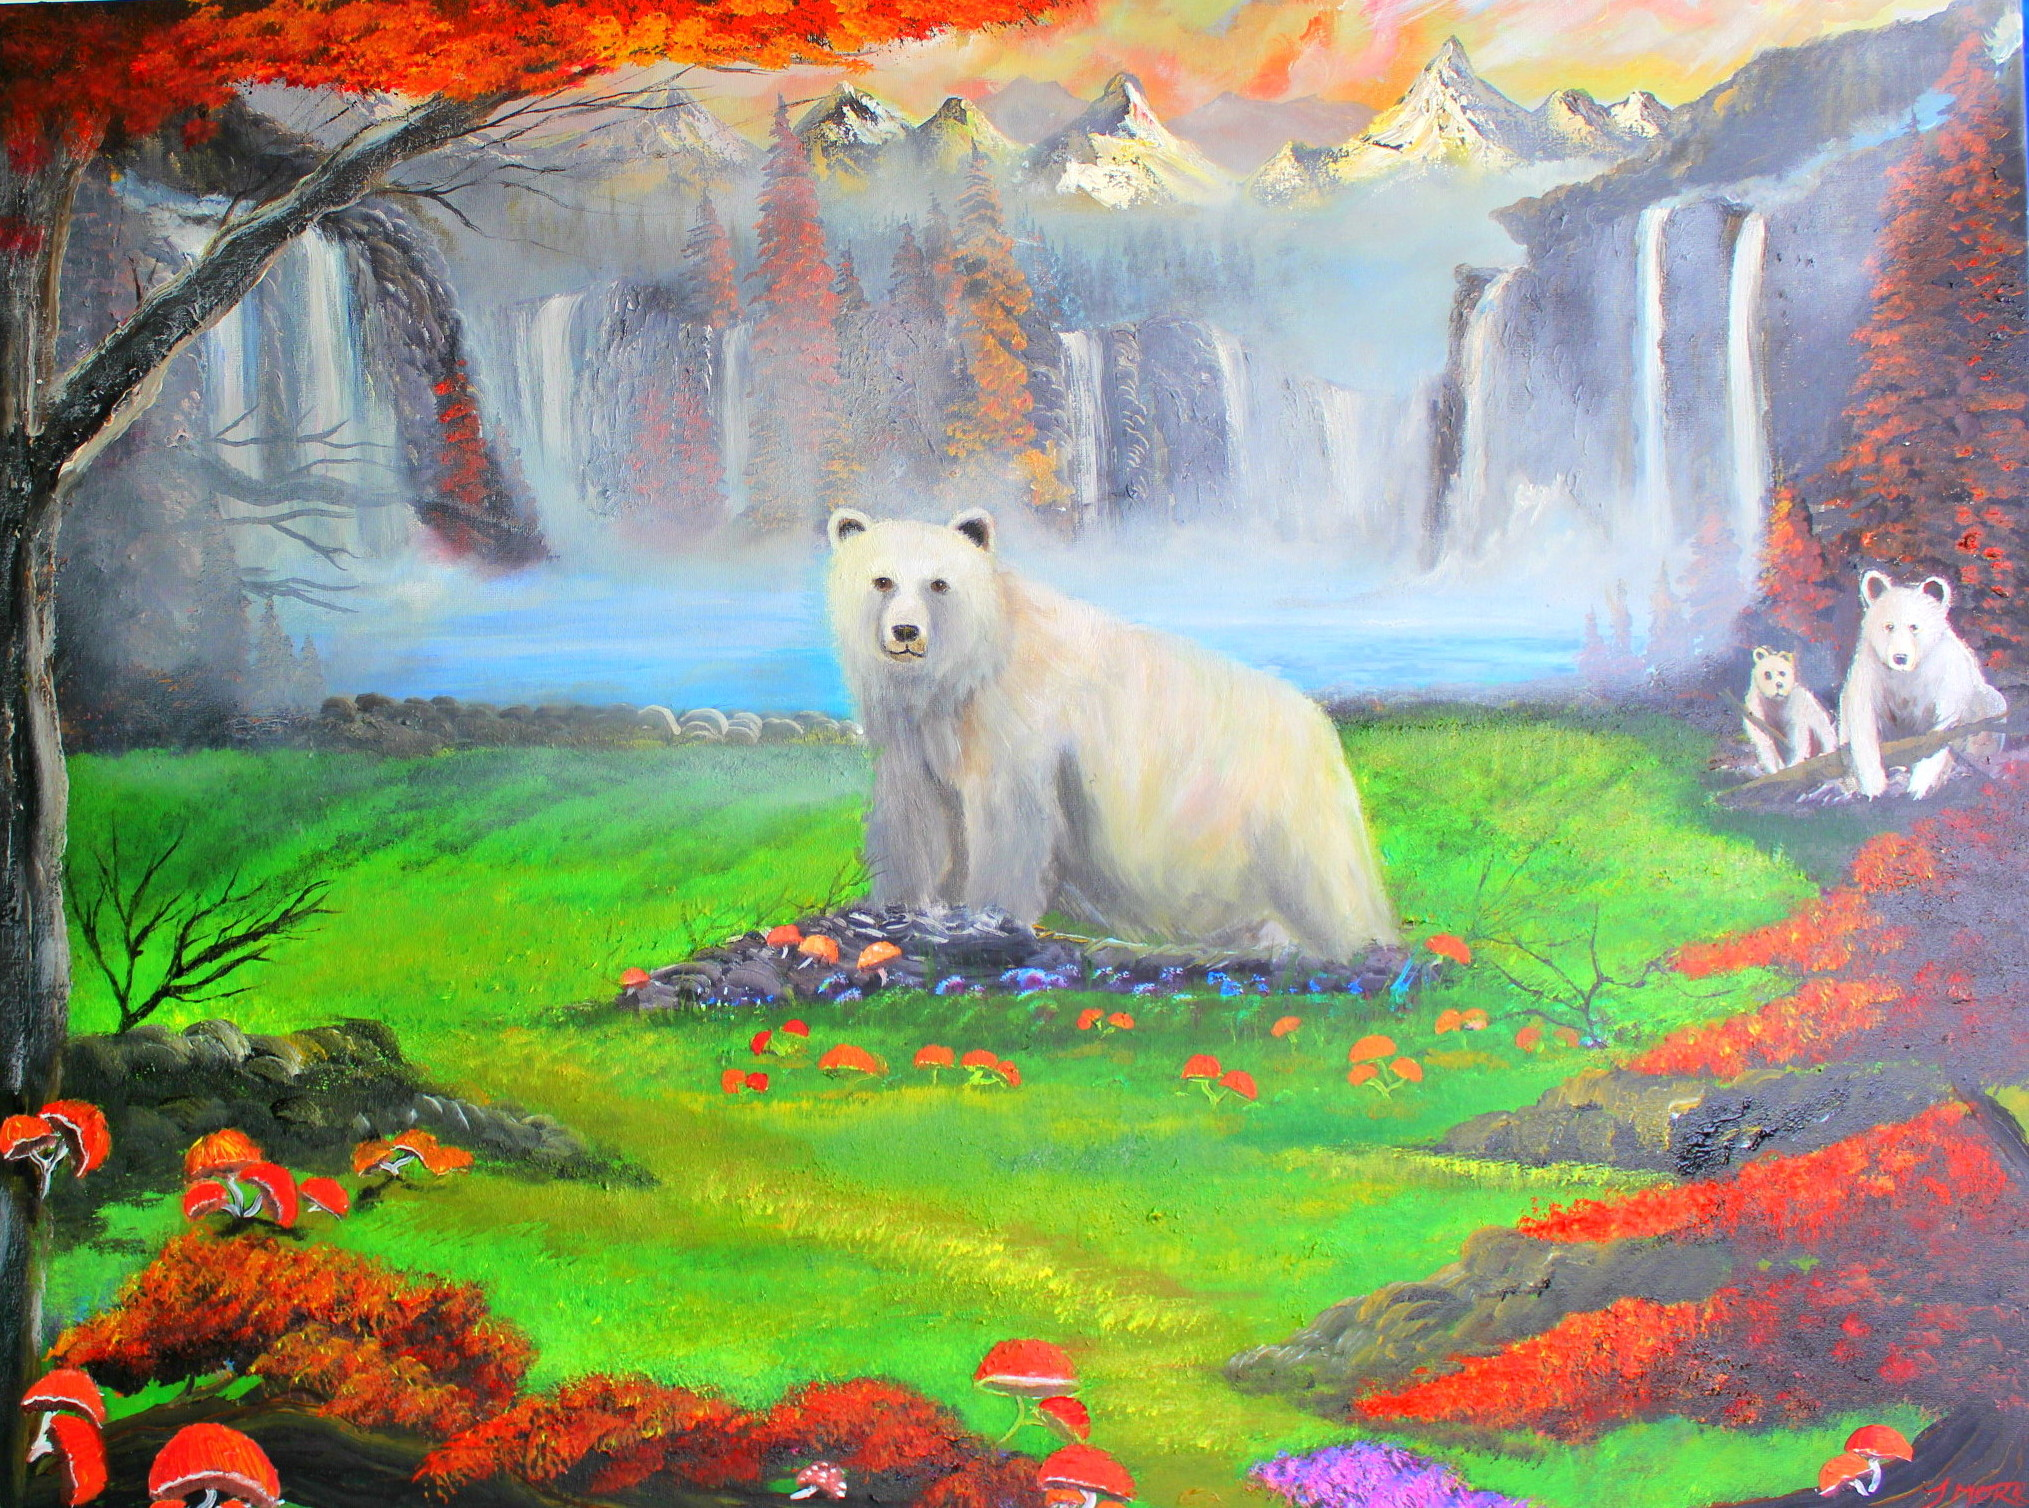 The Spirit Bear Mountainscape/wilderness painting